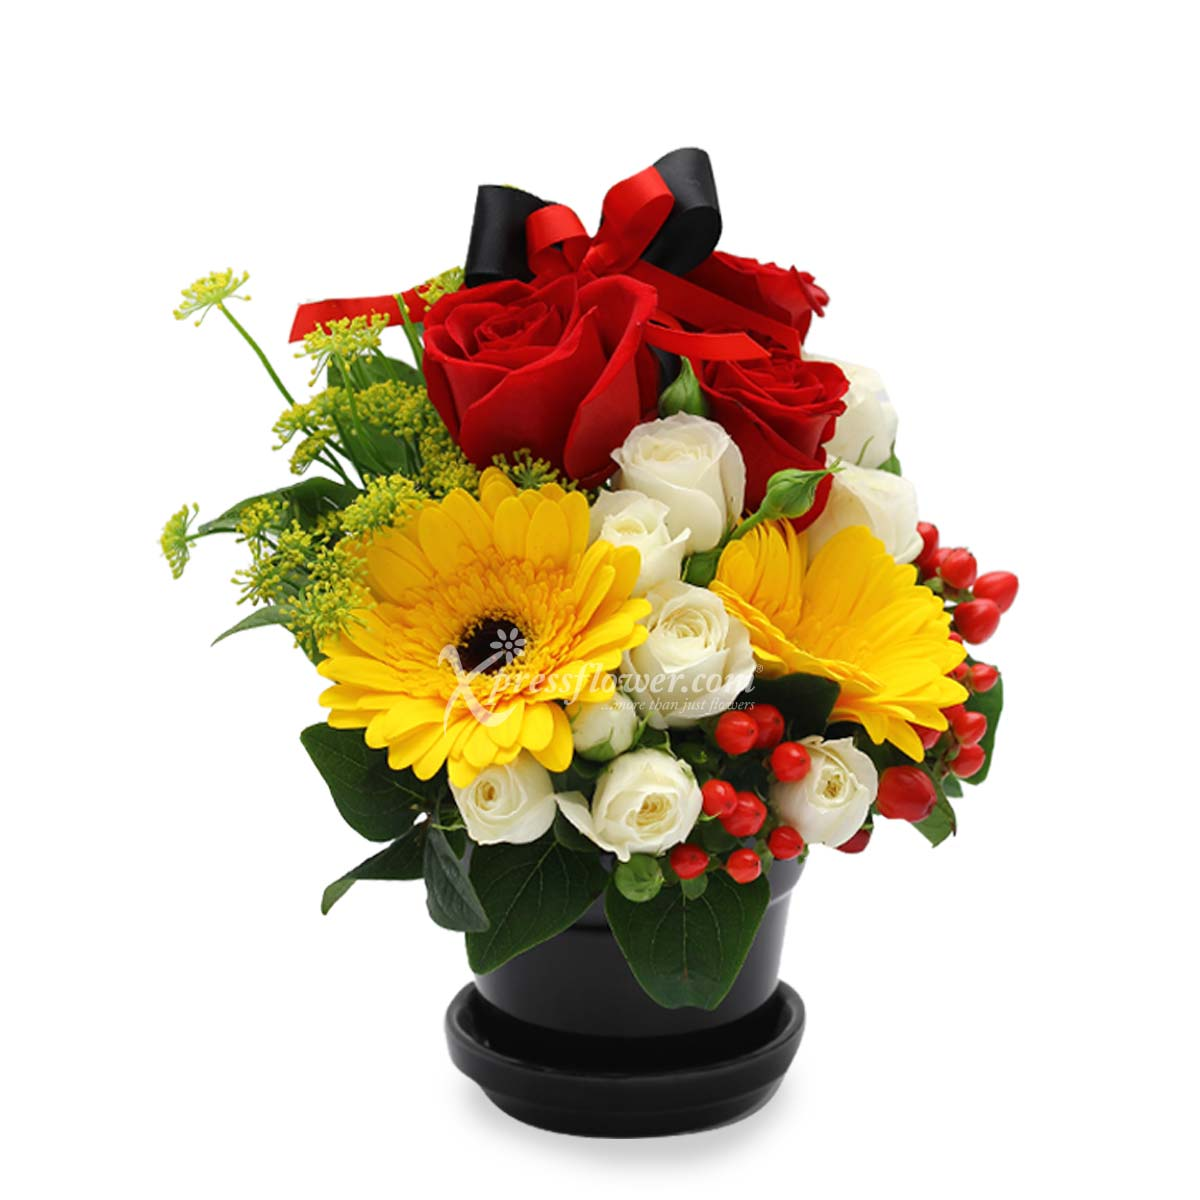 DSAR1831 Better with you flower arrangement